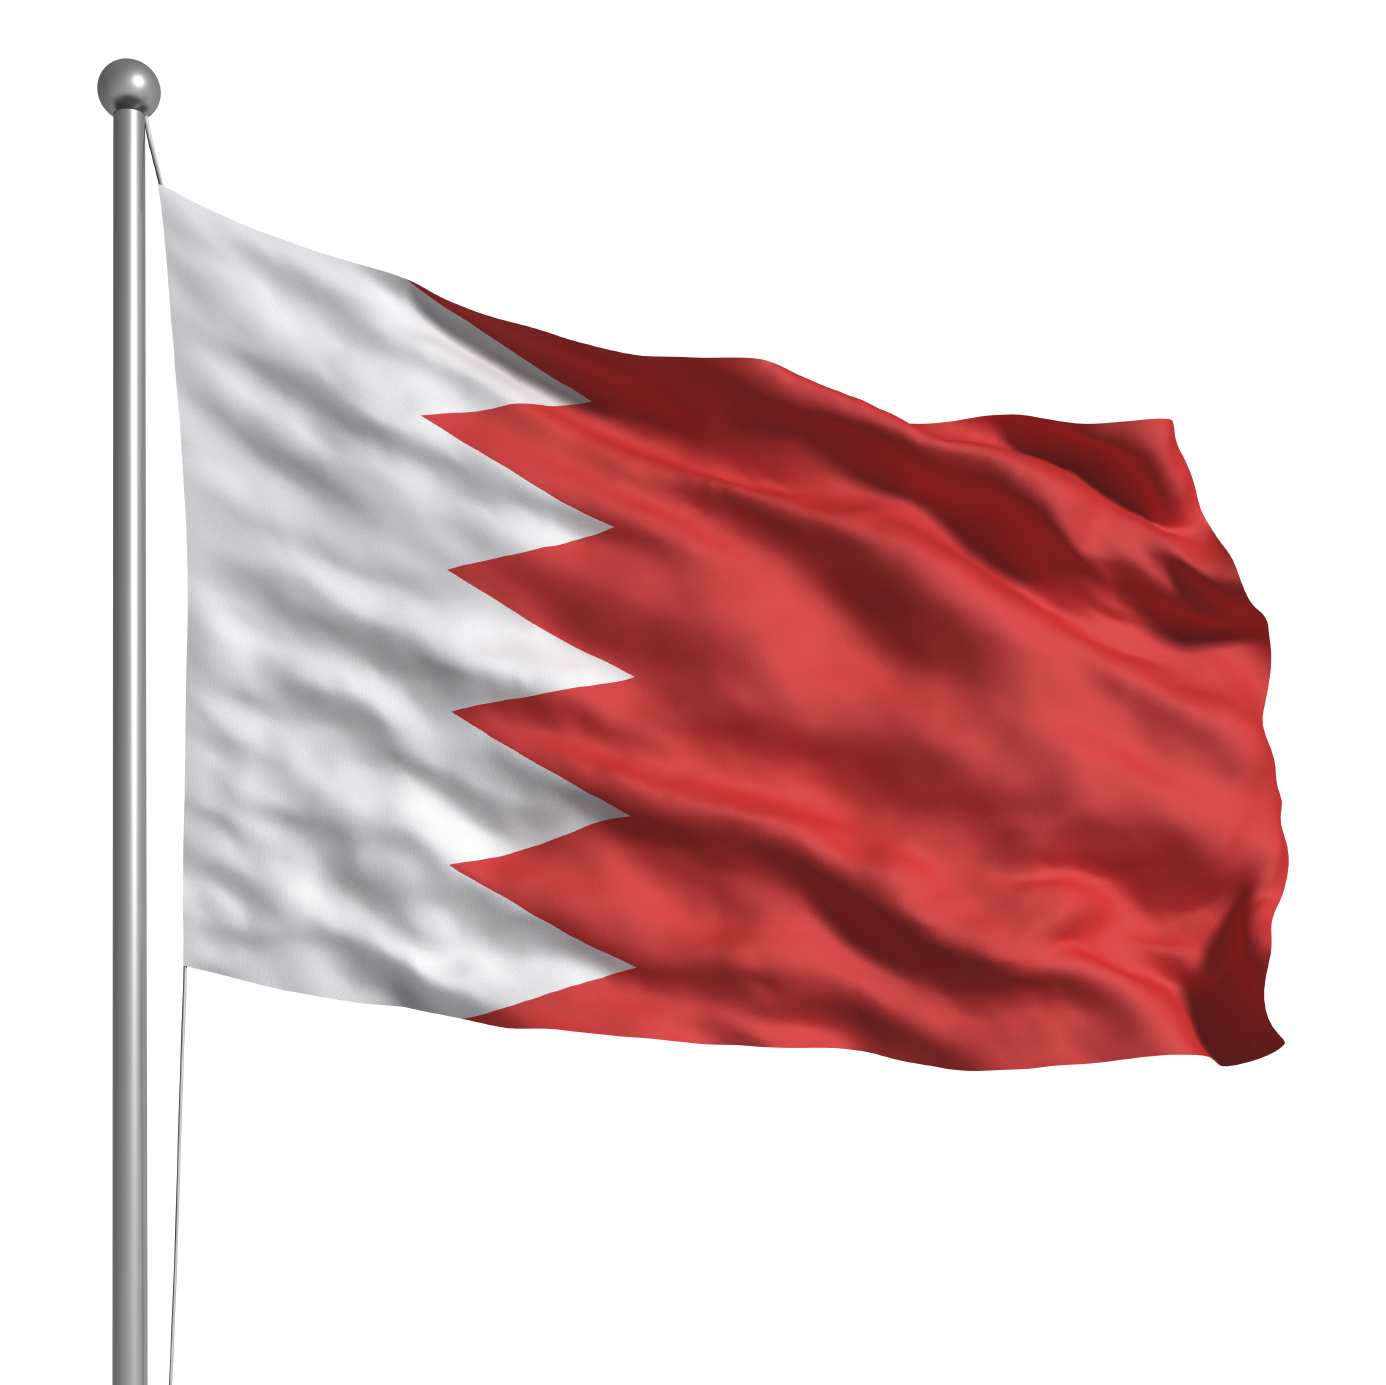 bahrain accuses iran of fueling unrest in the country led by the shi 039 ite muslims photo online